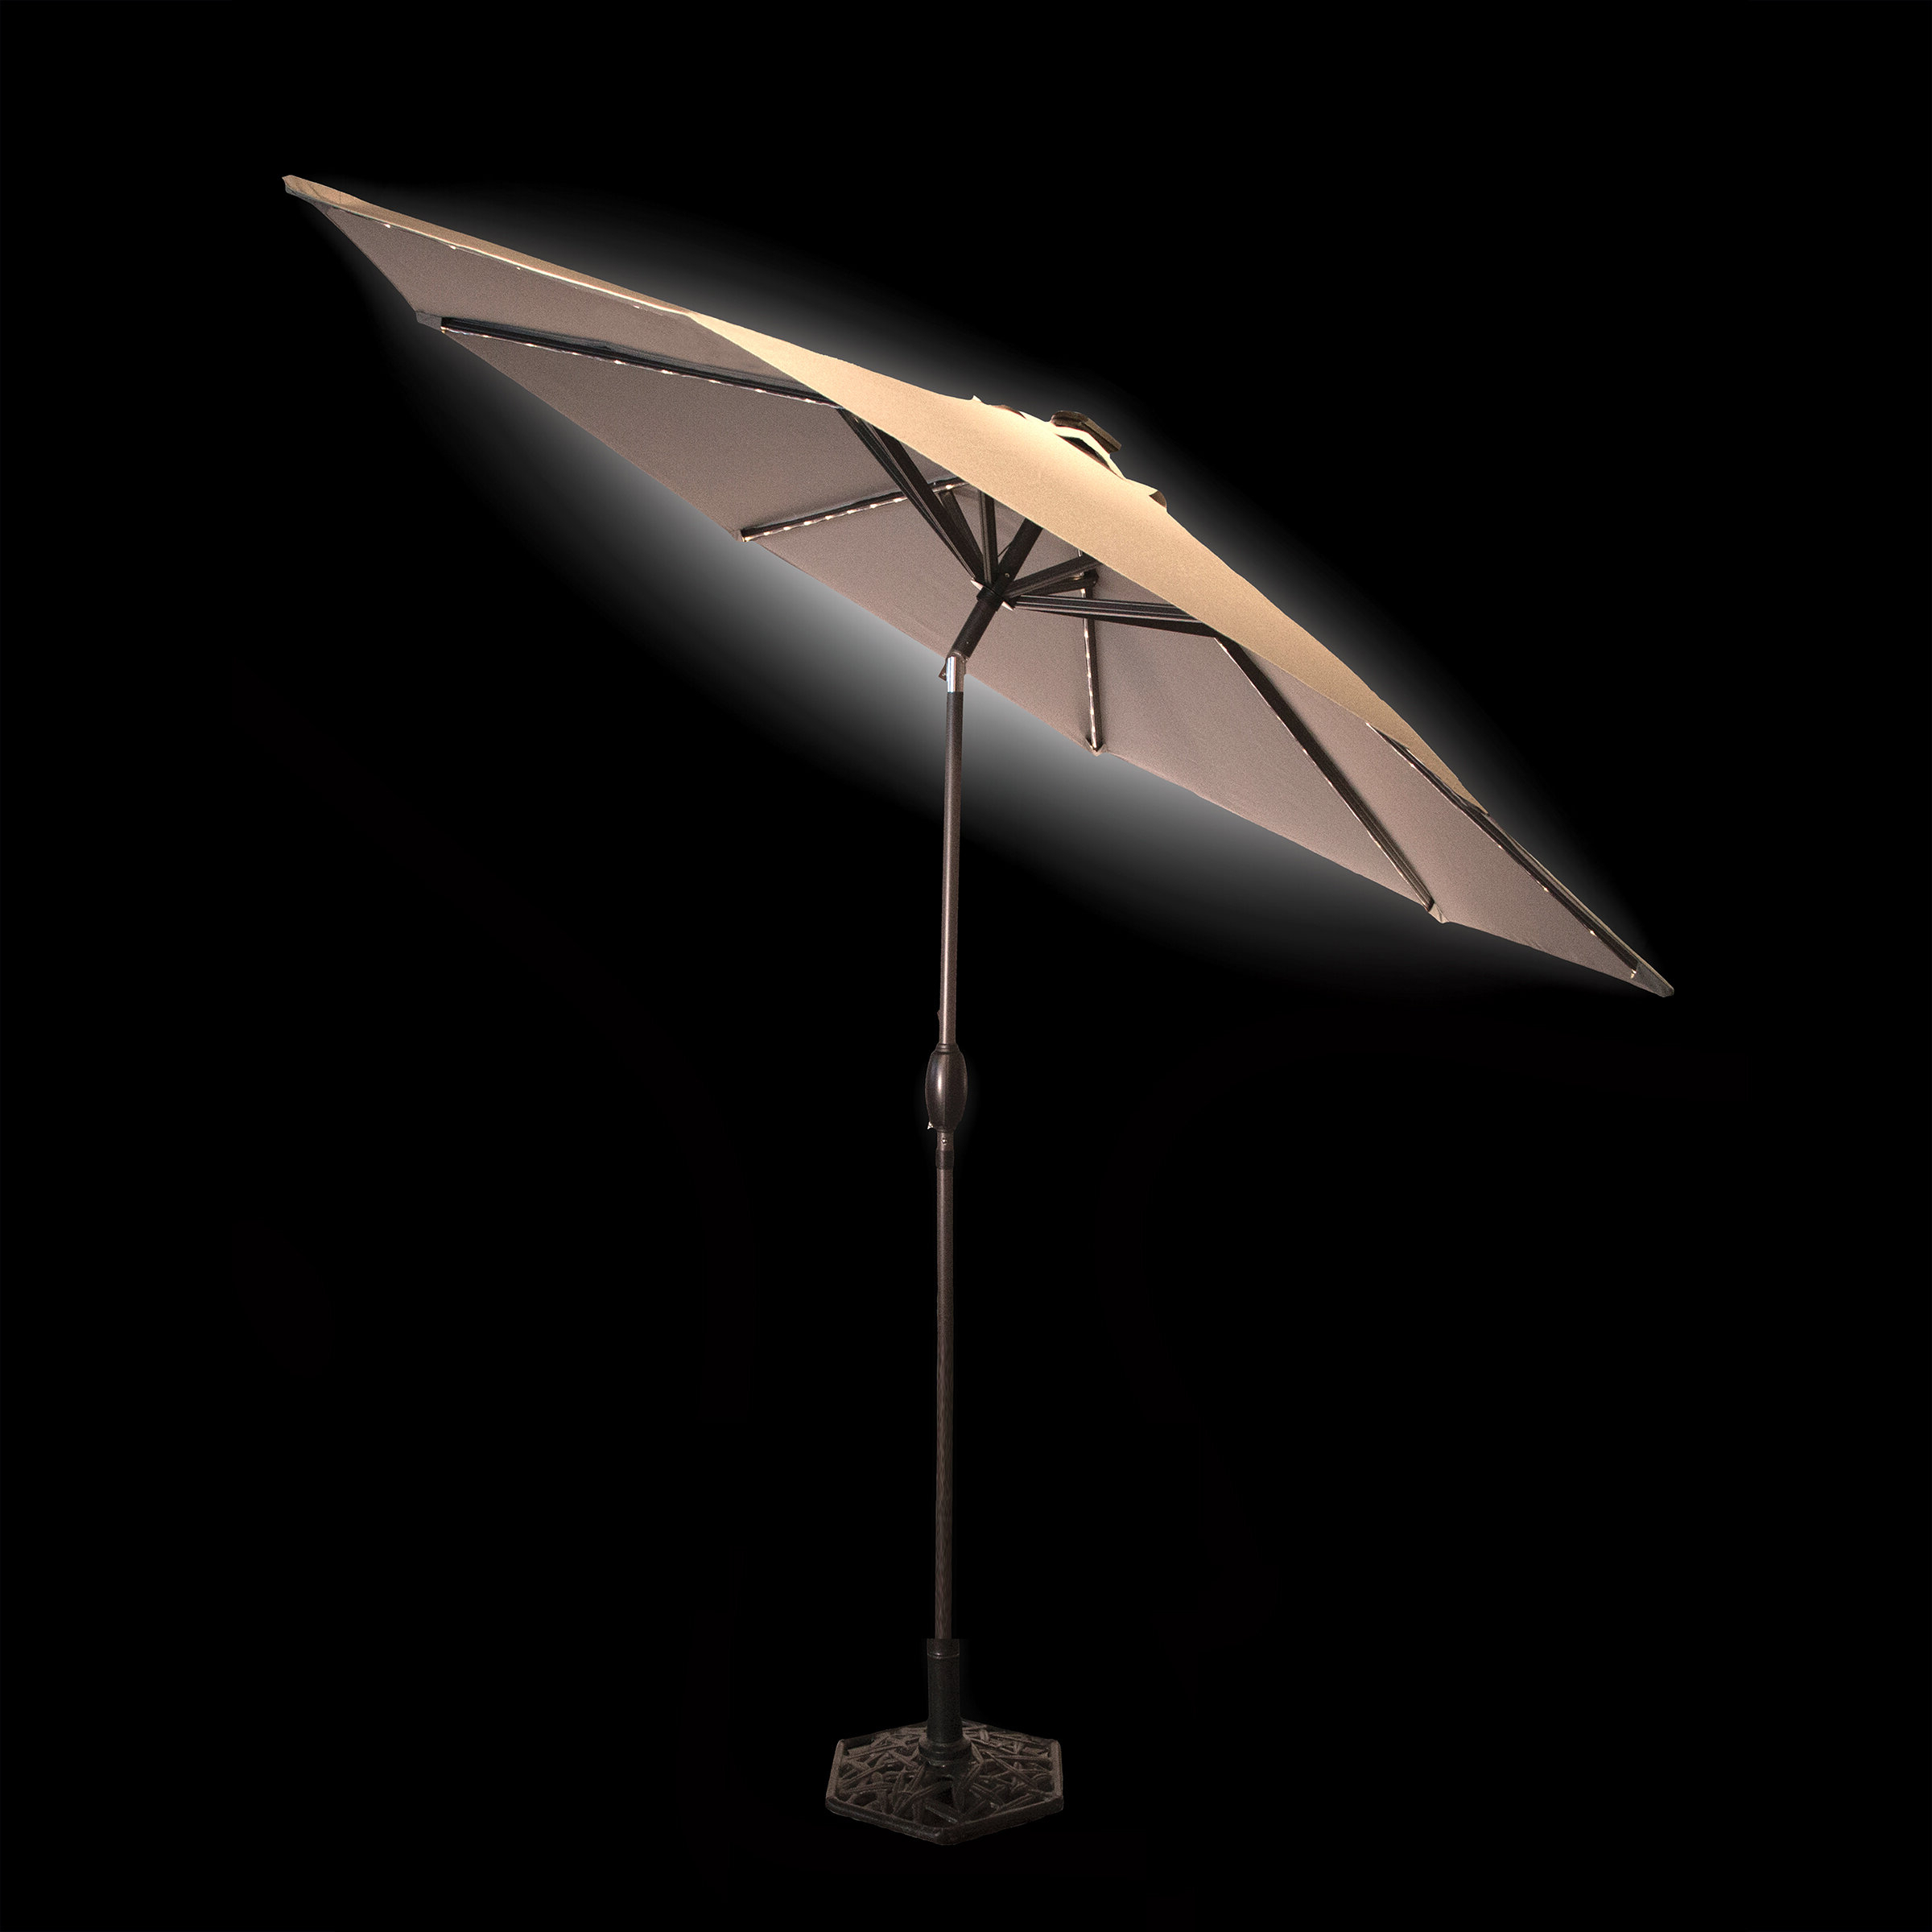 Hettie Solar Lighted Market Umbrellas Intended For Preferred Solar 9' Market Umbrella (View 5 of 20)